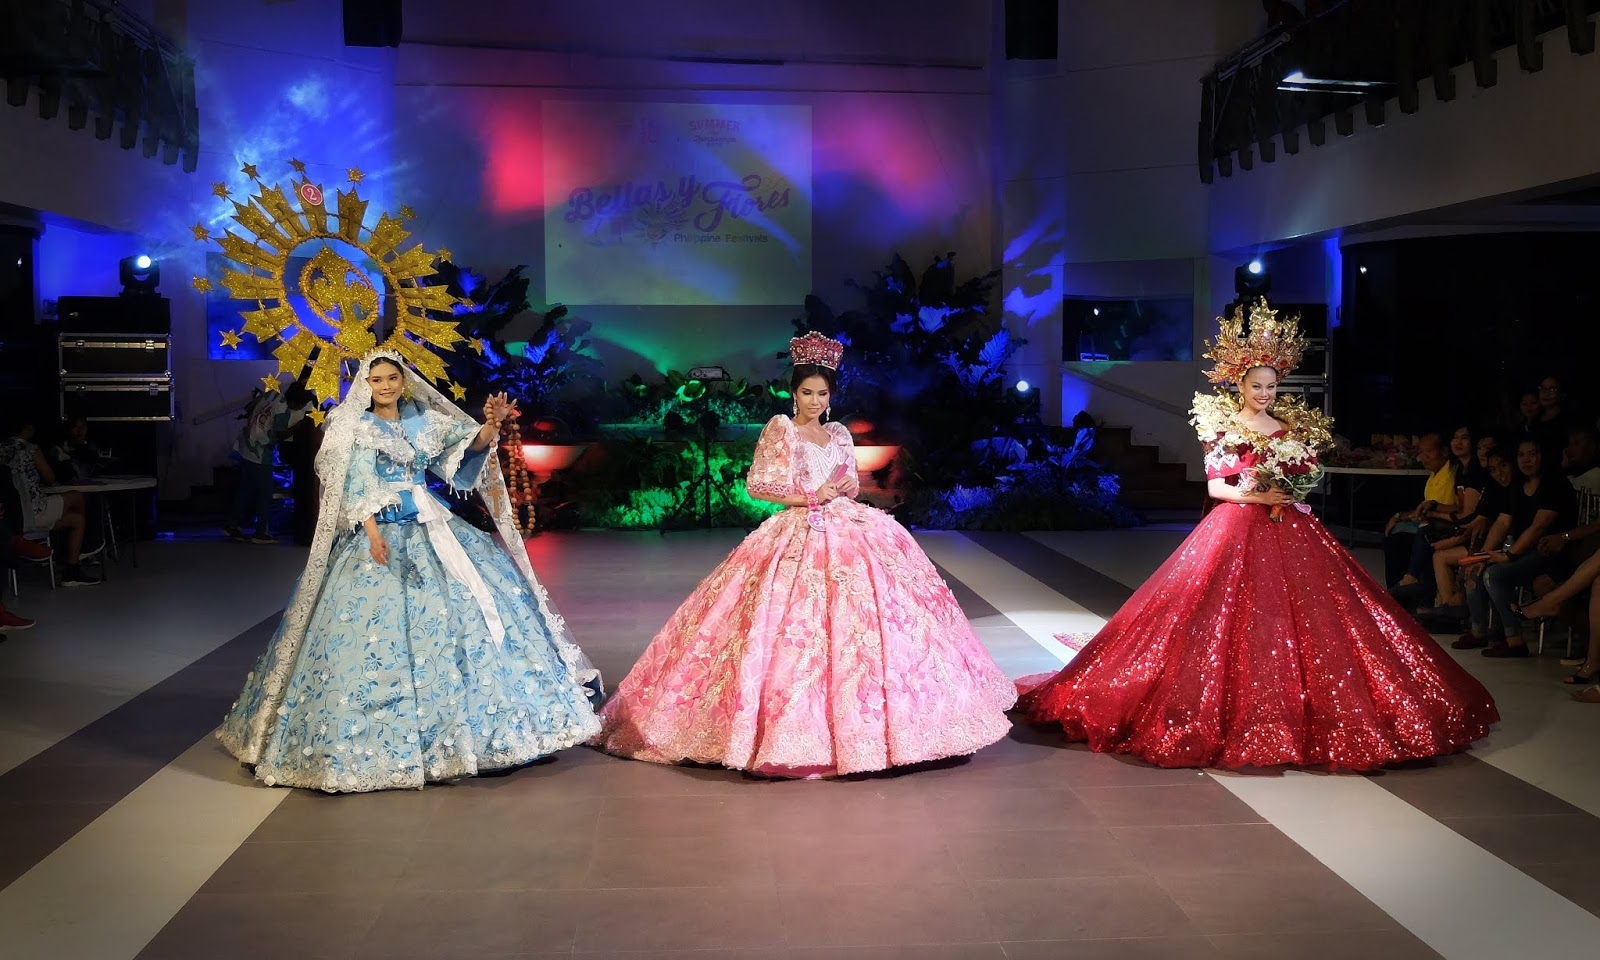 Hermosa Festival of Zamboanga City, Pamulinawen Festival of Laoag, Ilocos Norte, and Lami-Lamihan Festival of Lamitan, Basilan Festival de las Bellas y Flores Gown Competition National Costume